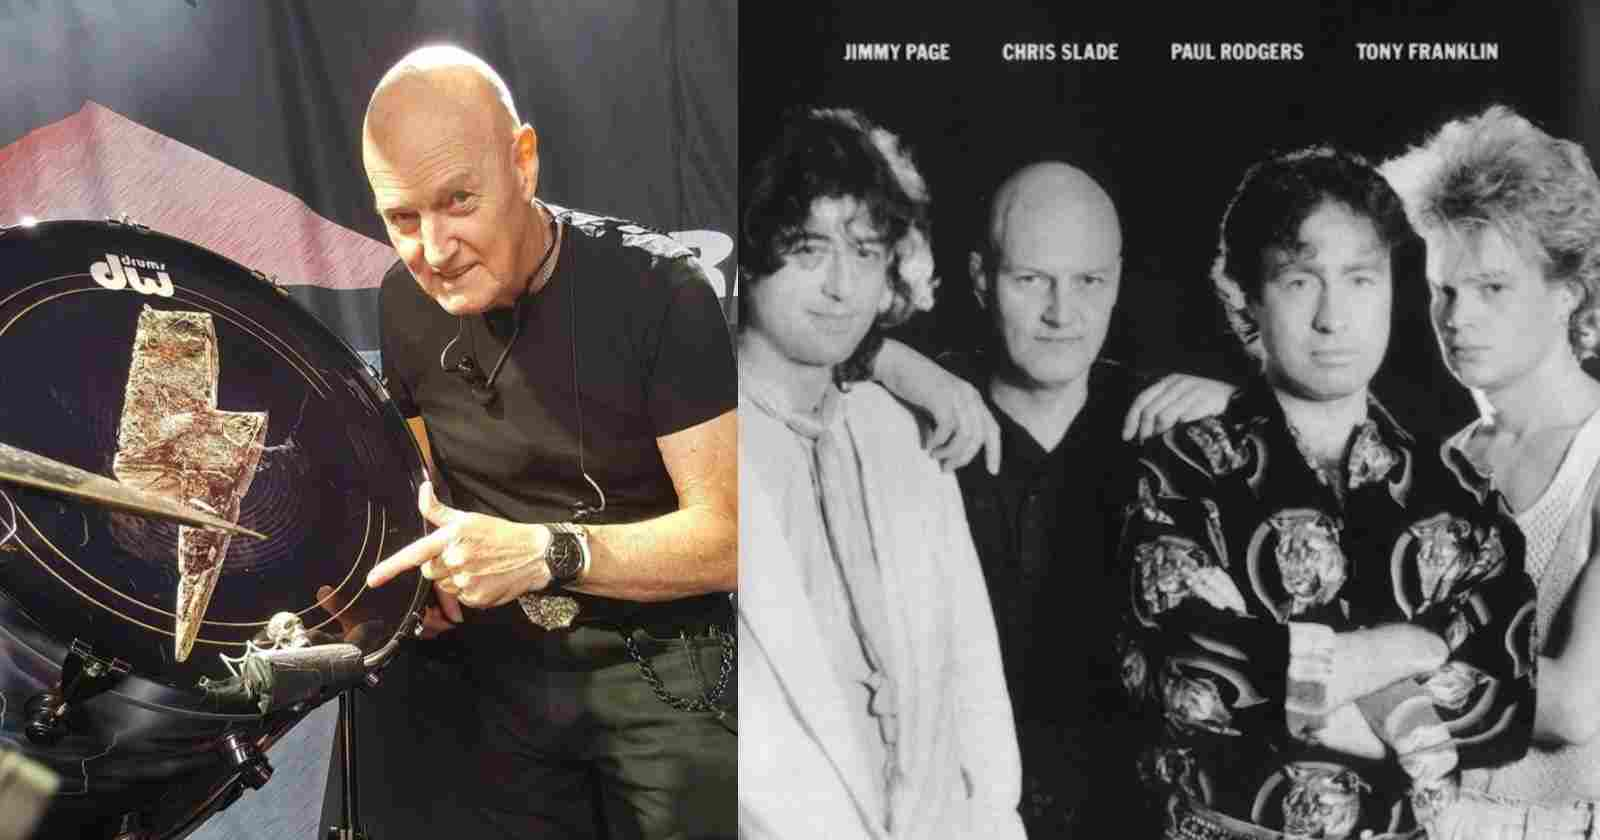 Chris Slade The Firm